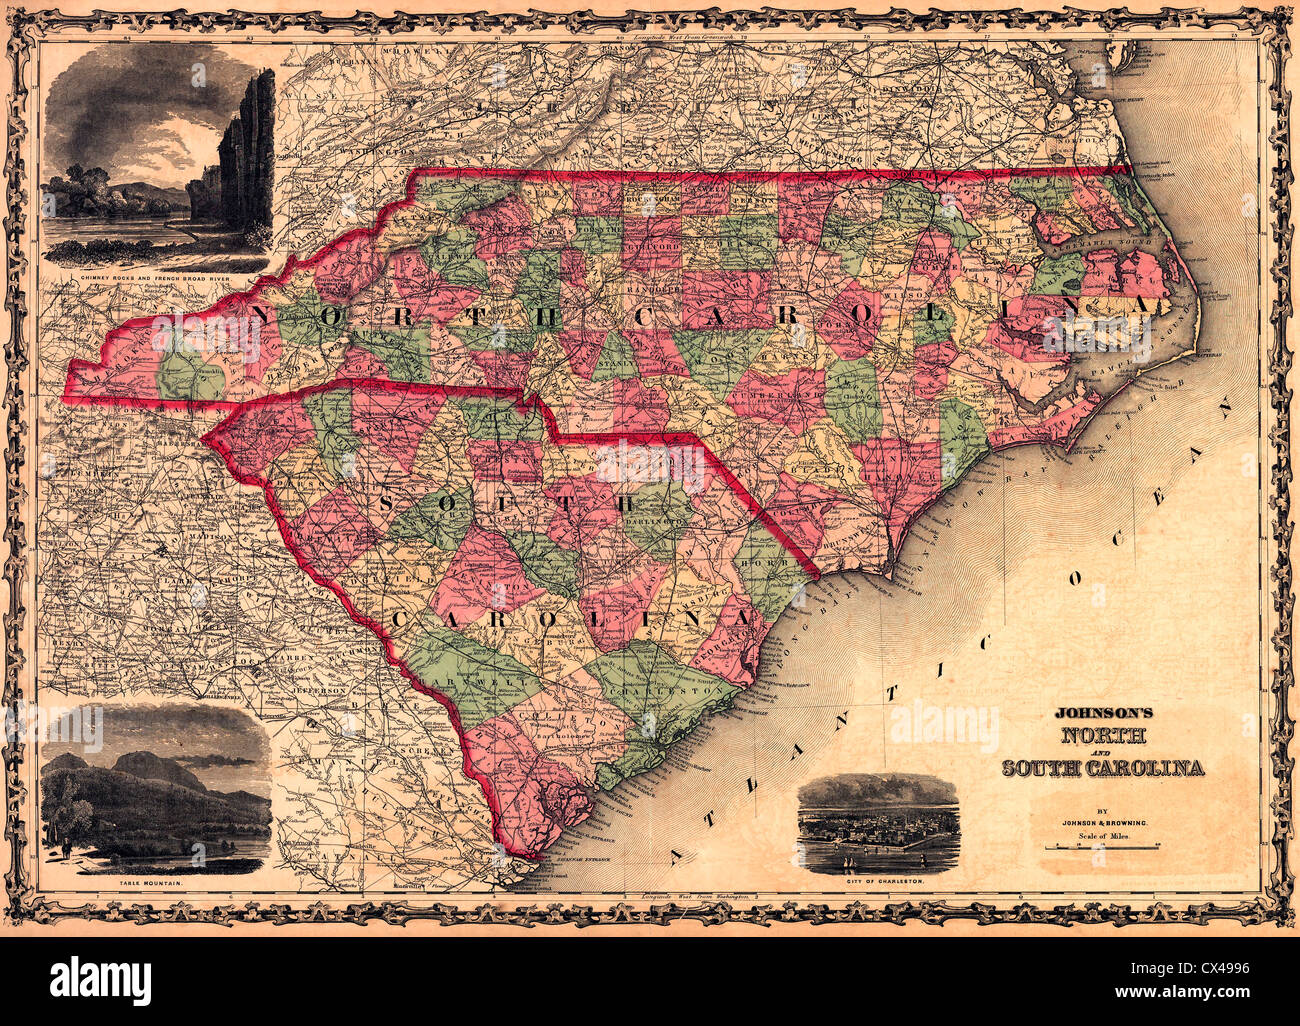 Map of North and South Carolina USA 1861 Stock Photo Royalty